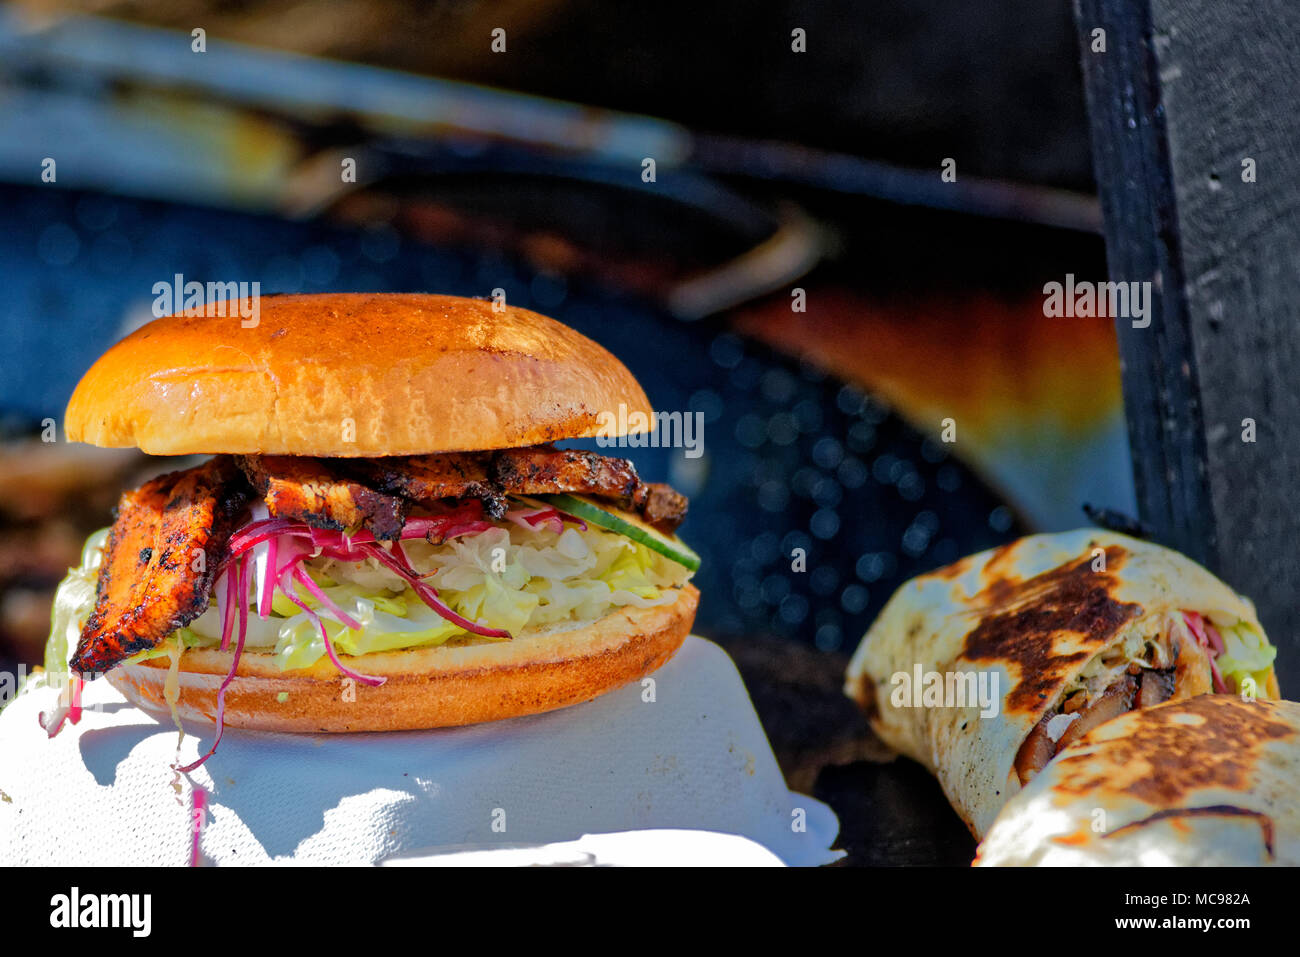 Fast Food. Stockbild